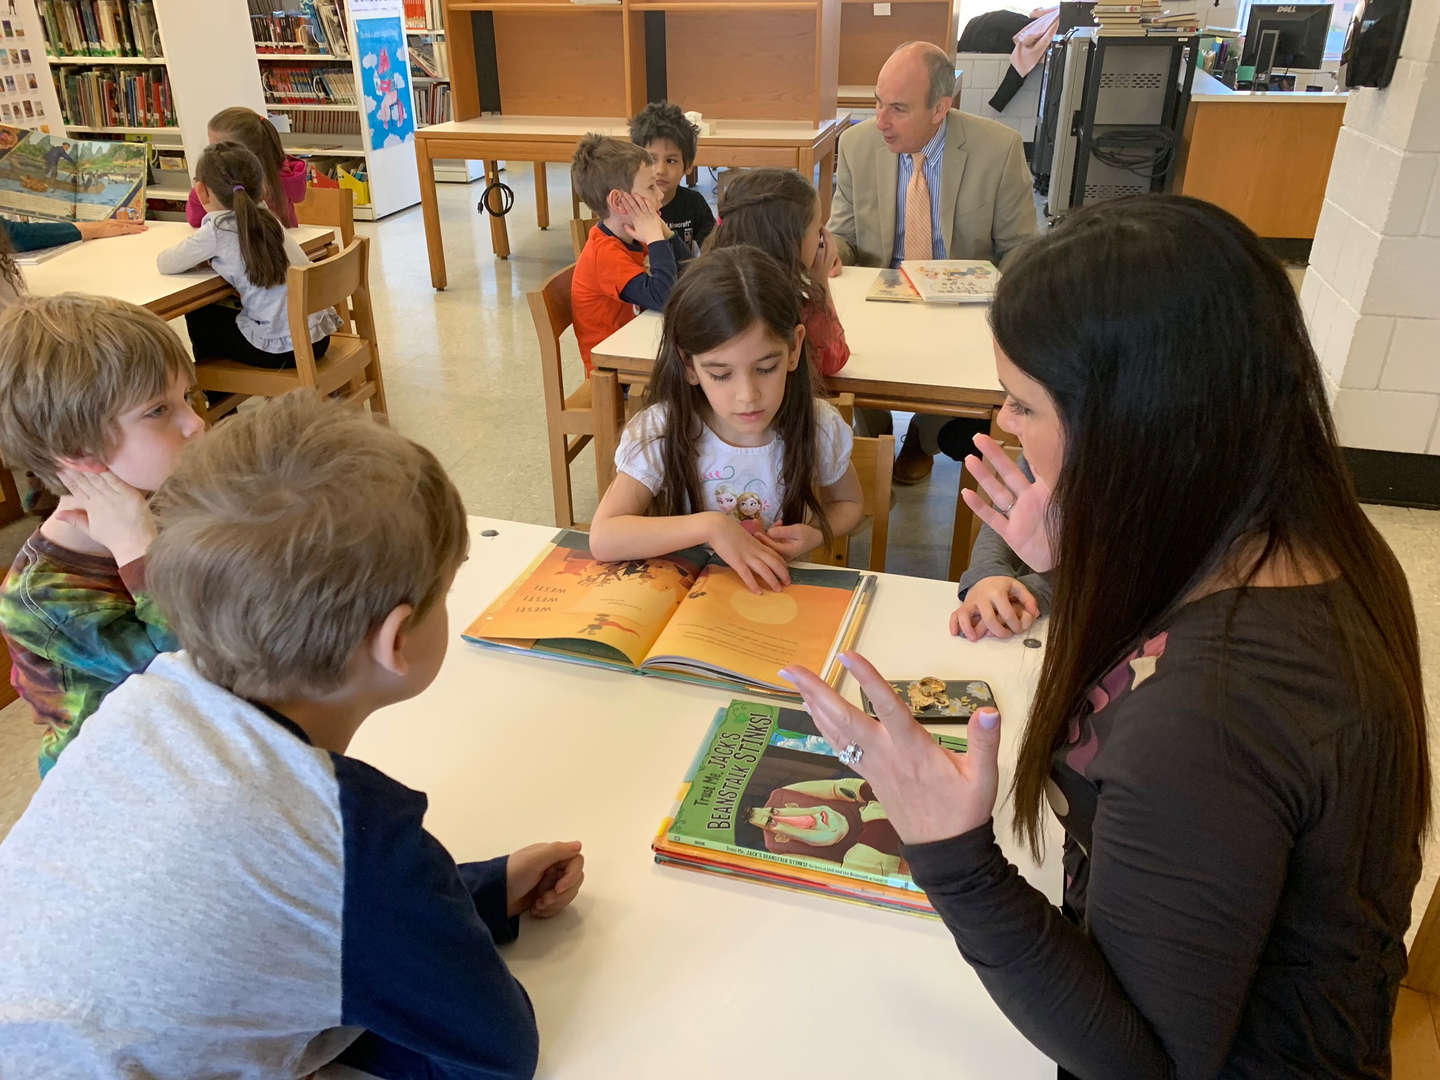 Member of the Nyack Rotary Club stop by to visit and read with our students 3.28.19